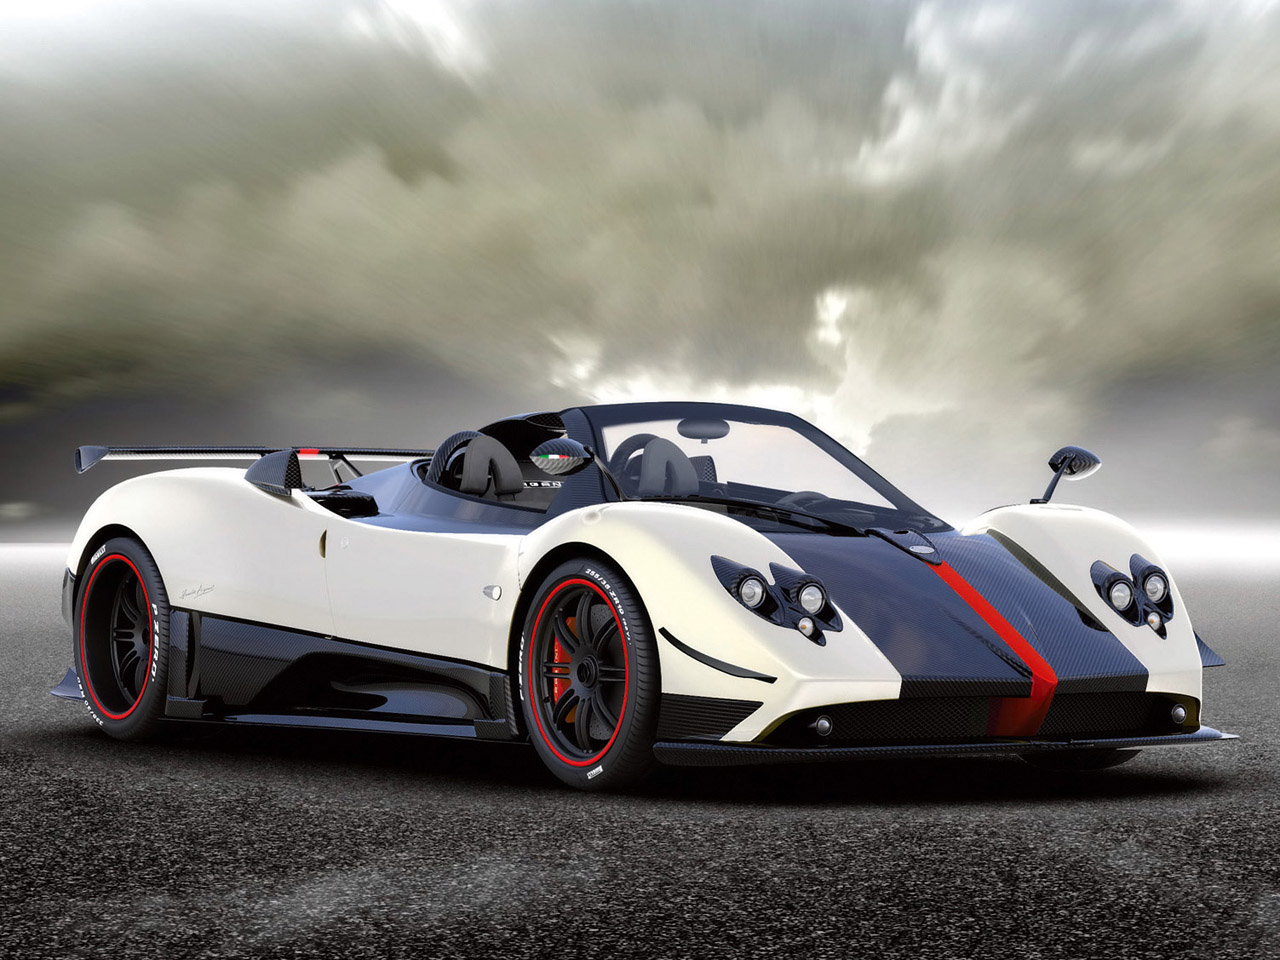 Pagani Zonda Cinque Roadster on electric cars sold in usa 2016